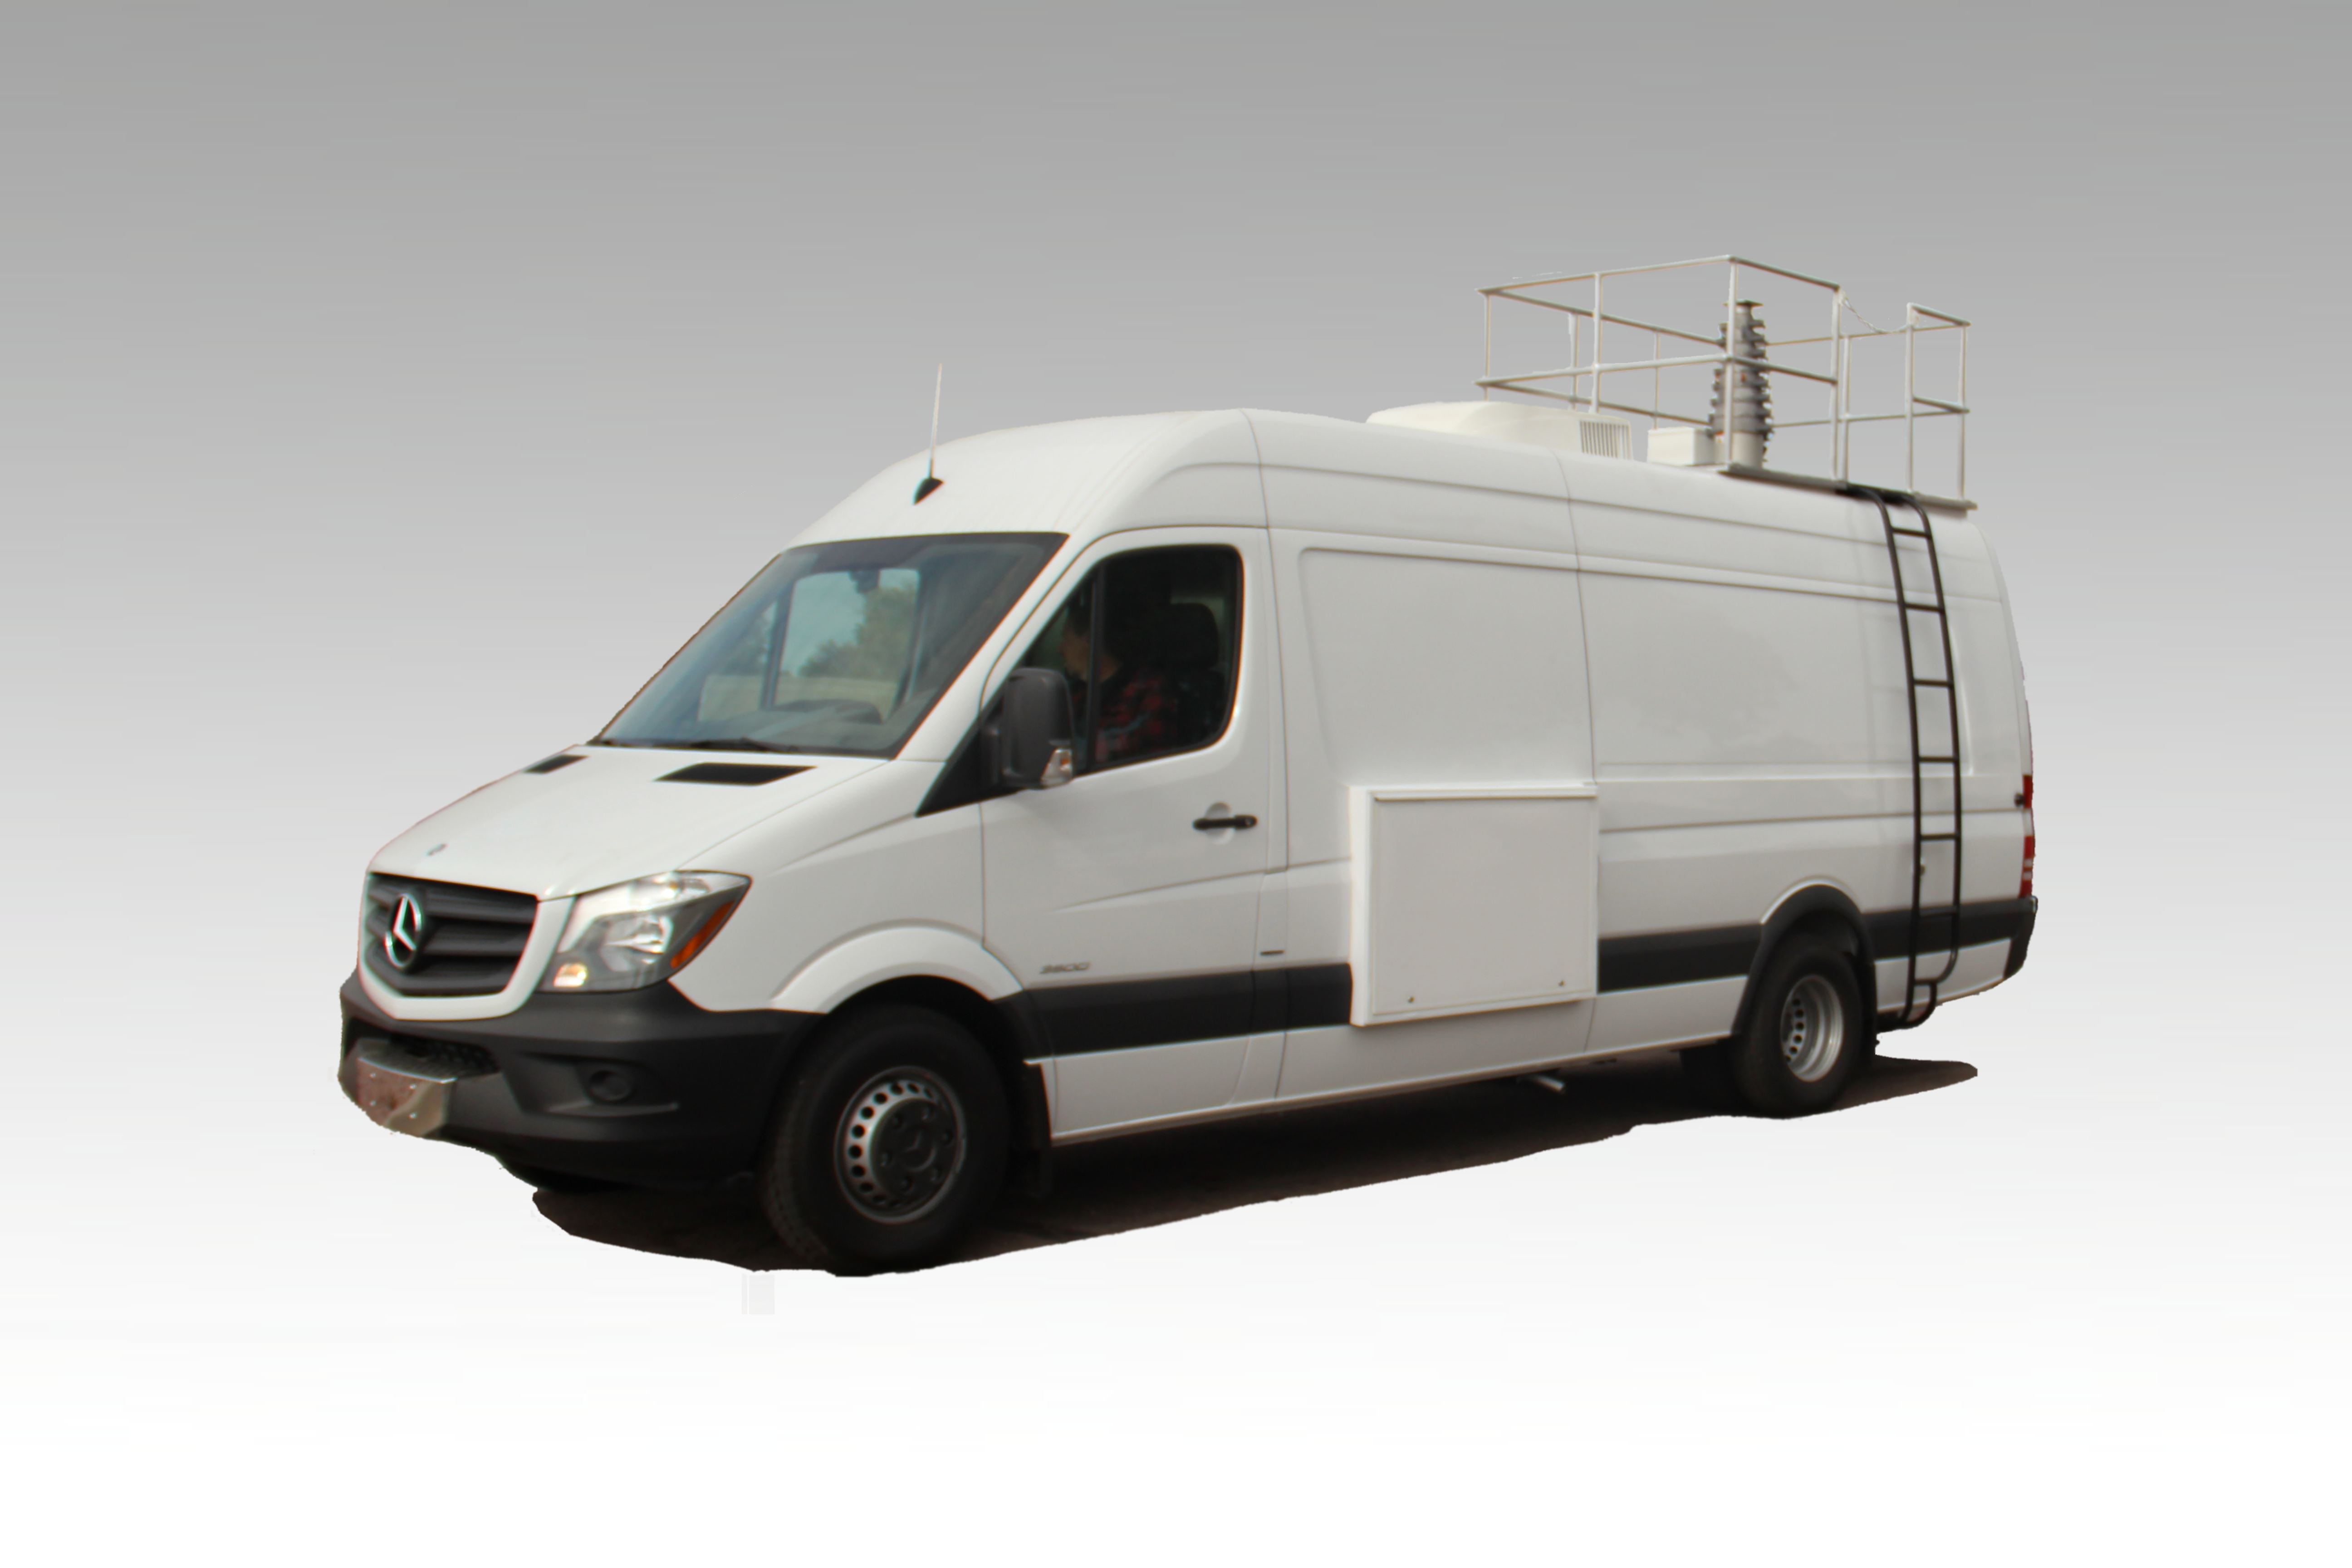 Sprinter Communications -Quality Vans & Specialty Vehicles